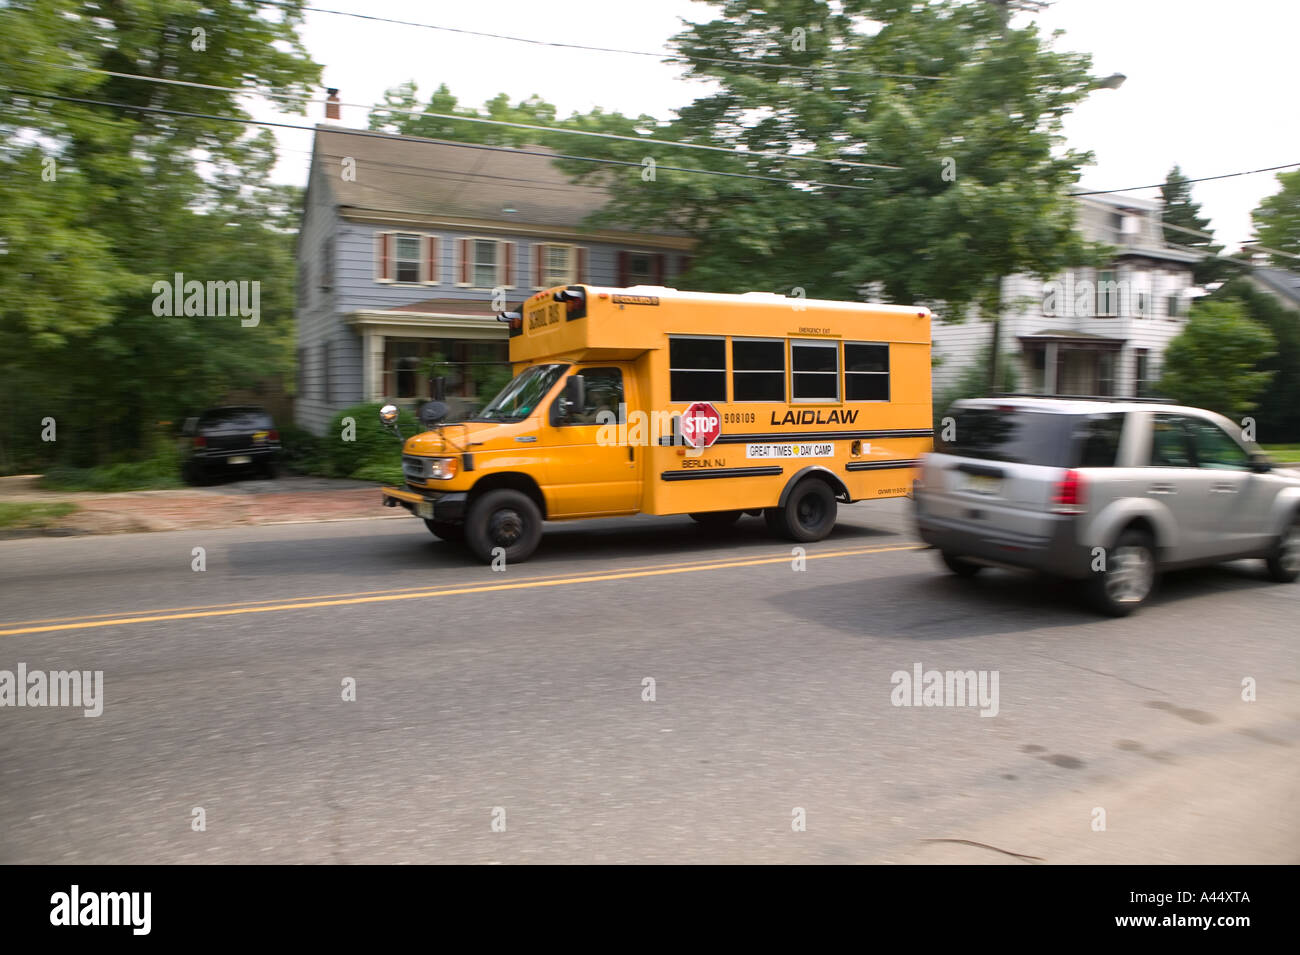 A short yellow school bus drives through the town of